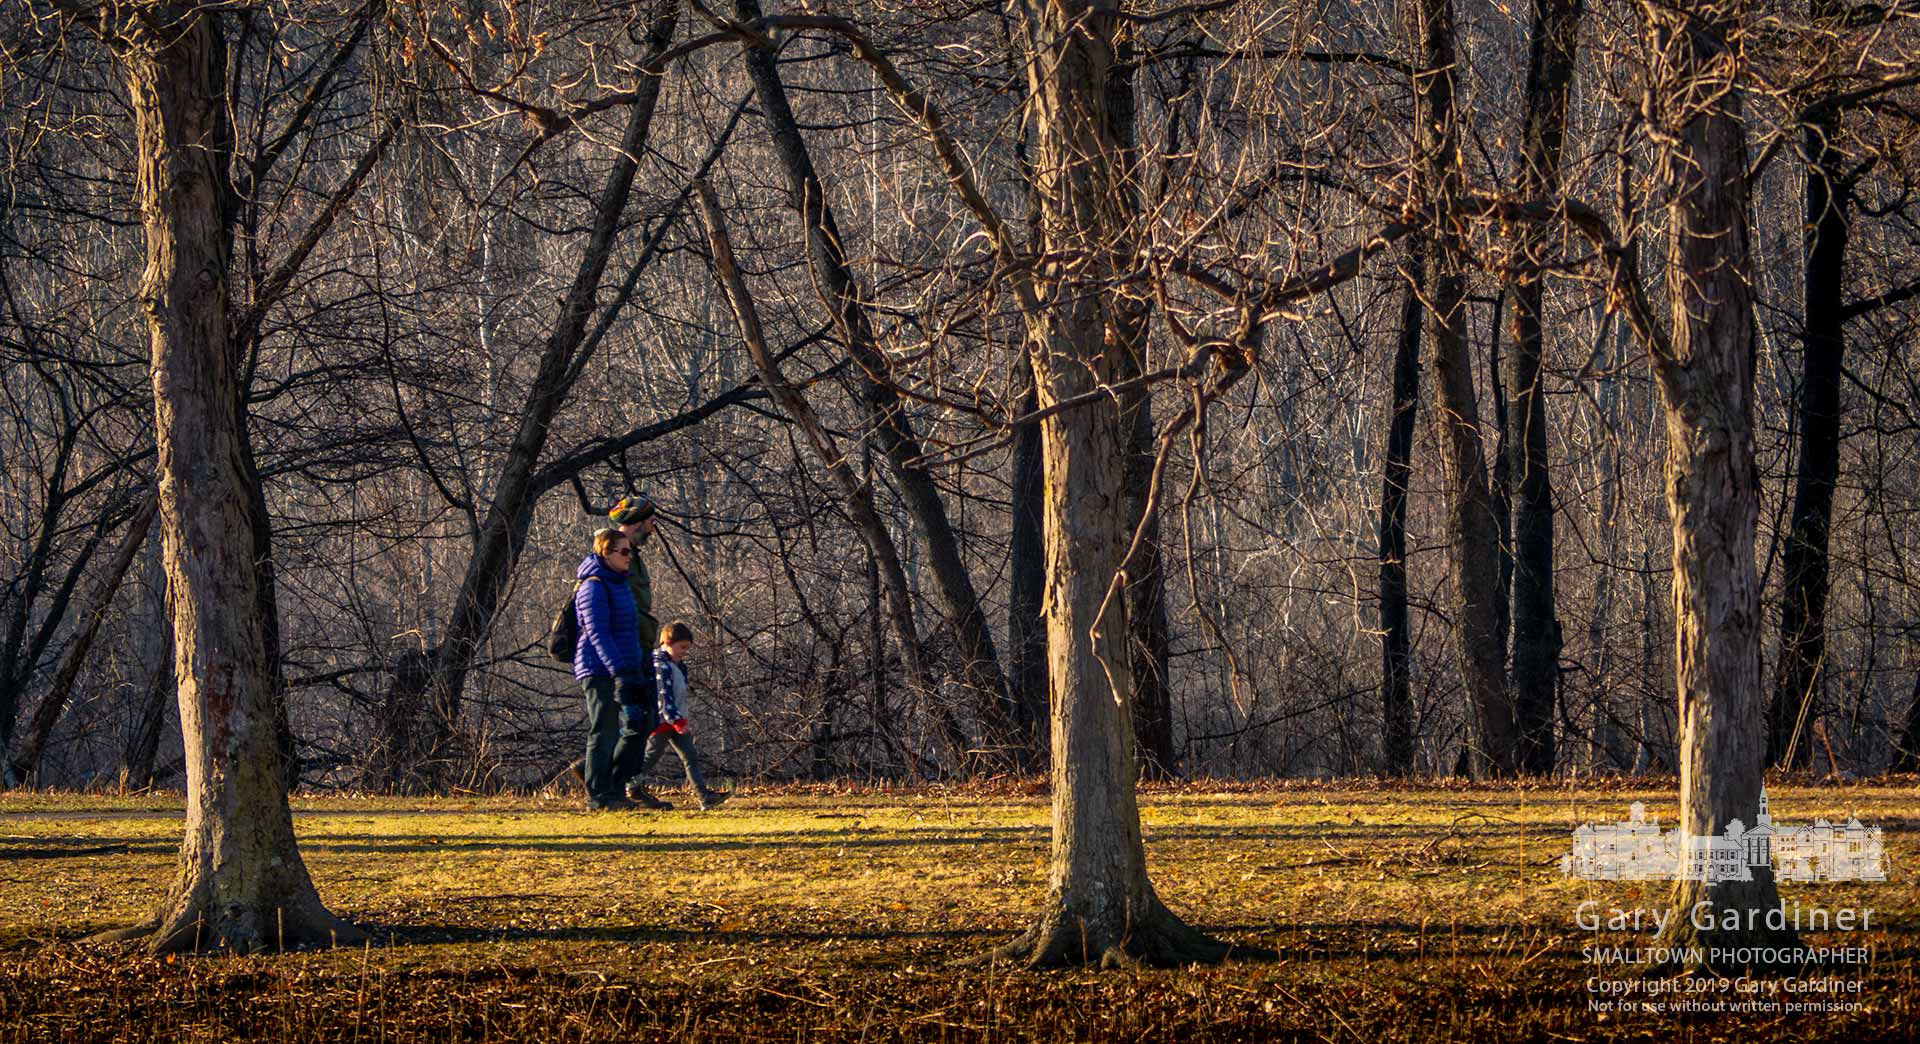 A family walks in the late afternoon sun along a section of the path beside Schrock Lake in Sharon Woods Metro Park. My Final Photo for Dec. 21, 2019.